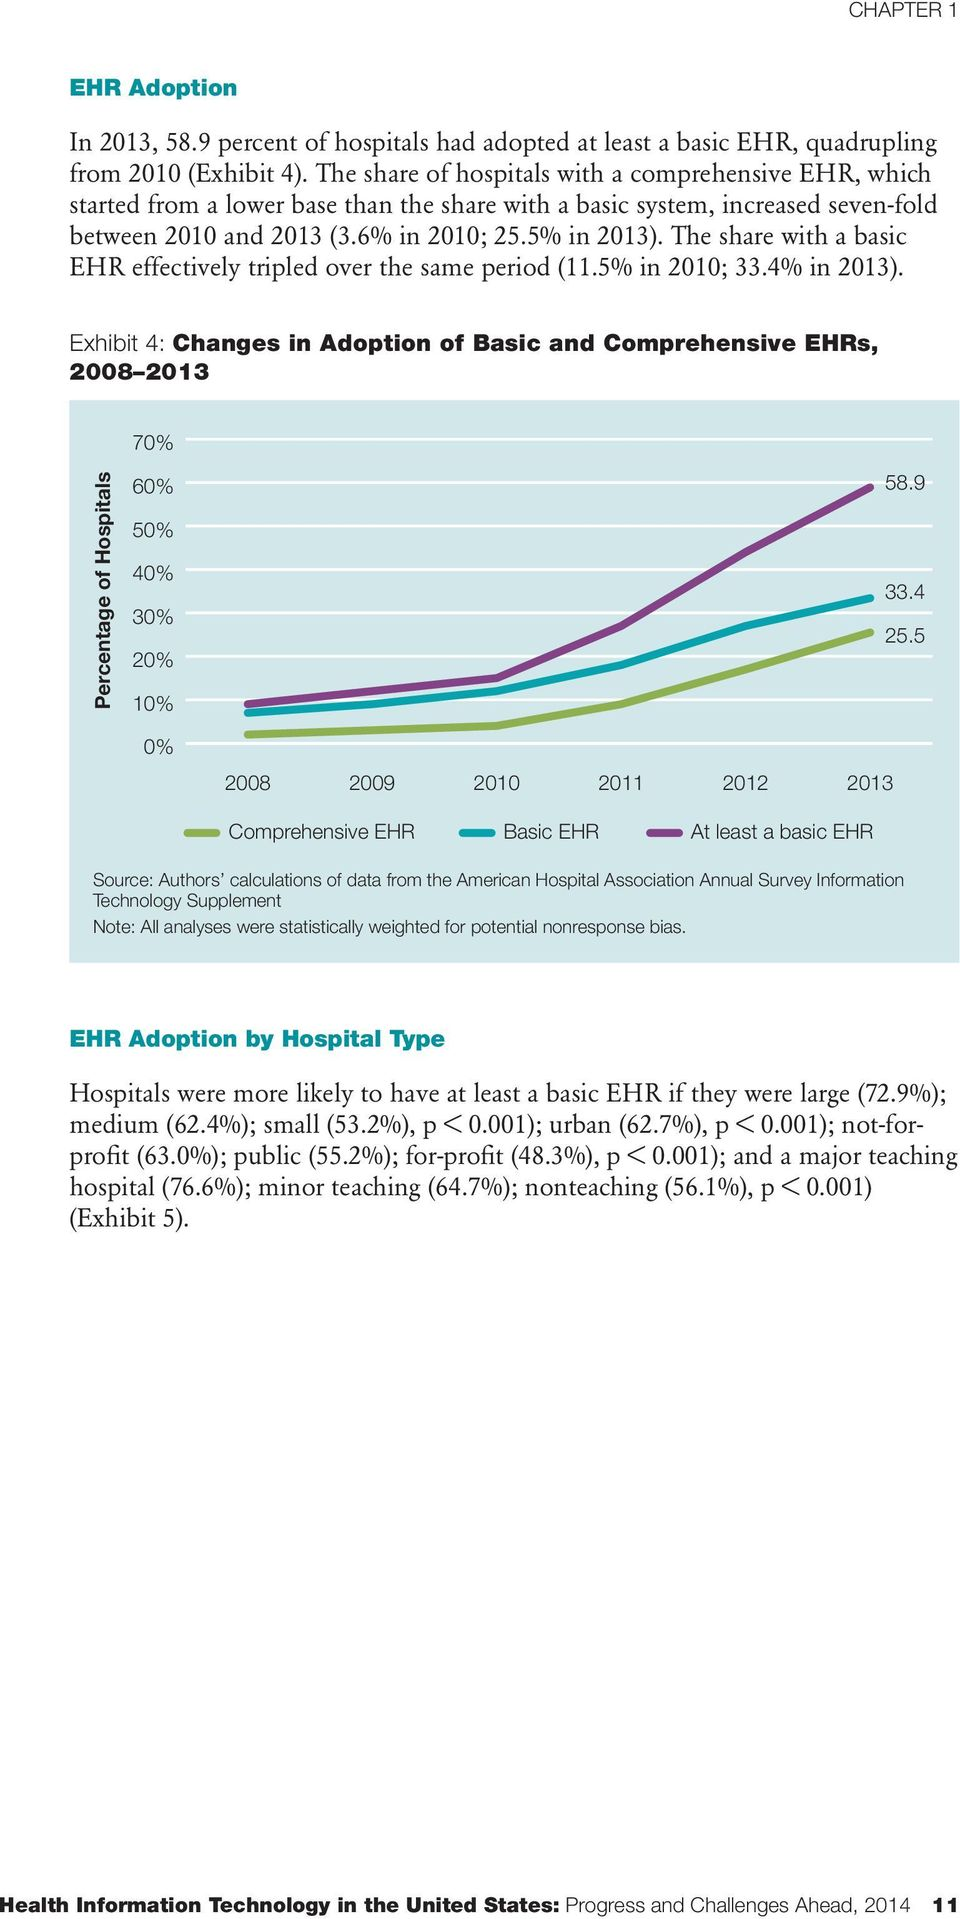 The share with a basic EHR effectively tripled over the same period (11.5% in 2010; 33.4% in 2013).